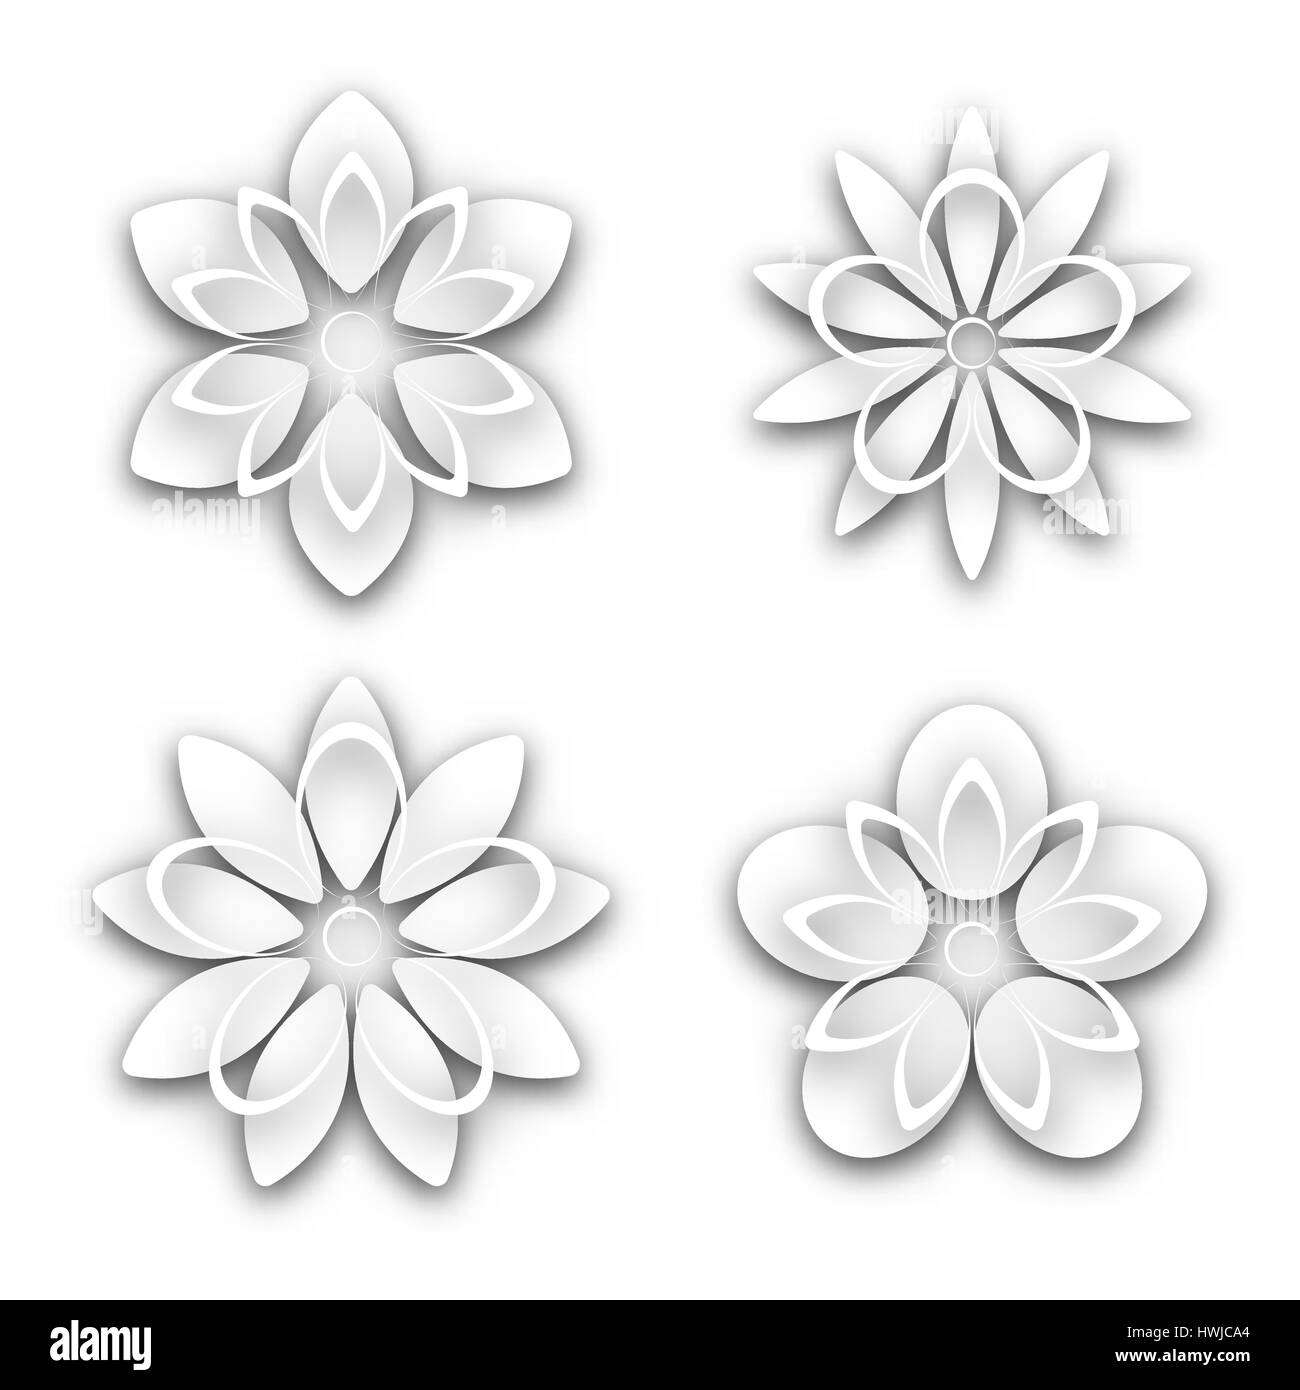 Set Of White Paper Flower Buds Different Shapes Isolated On White